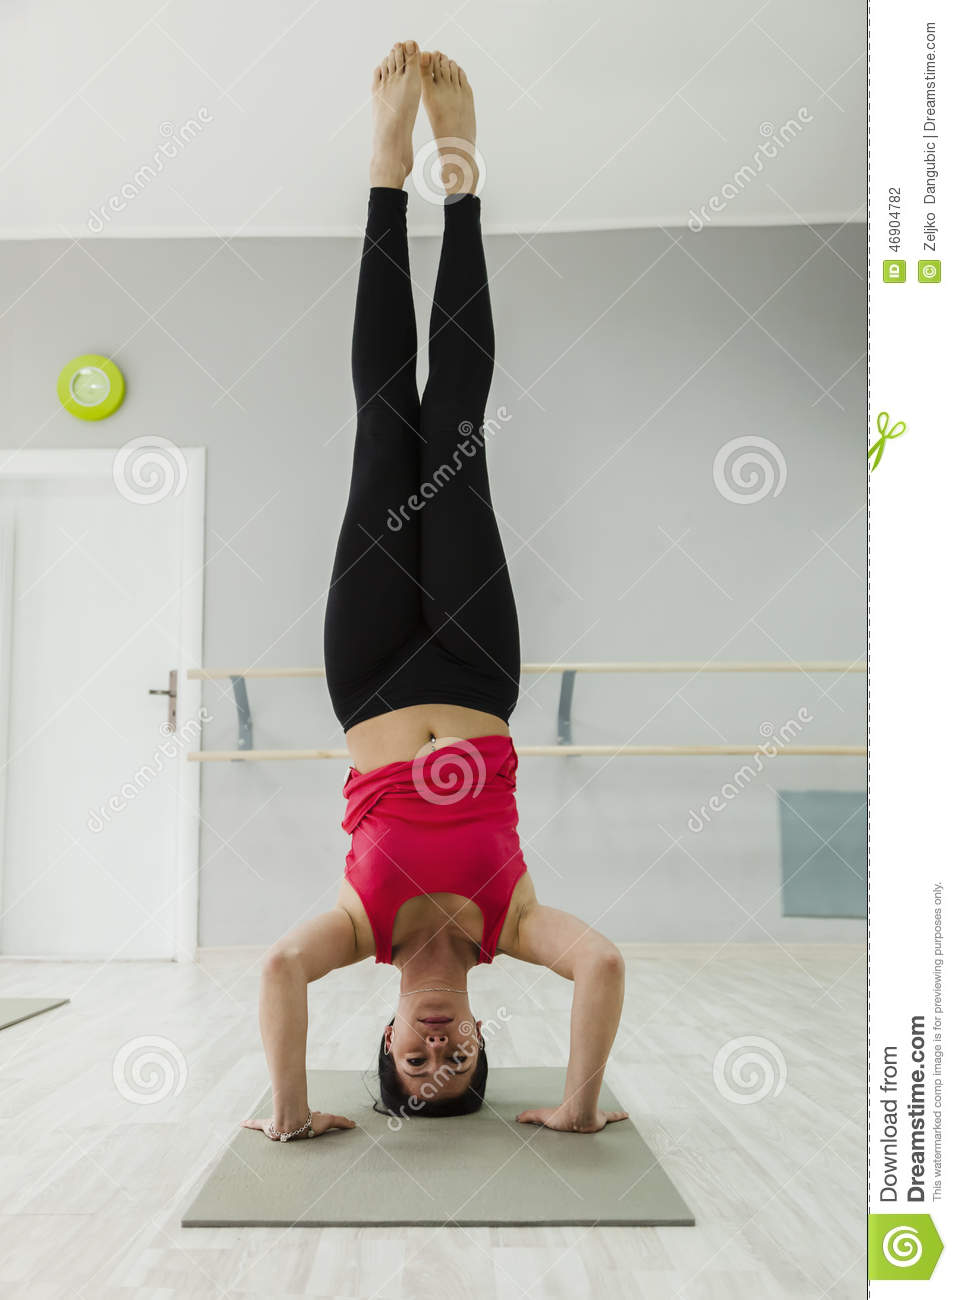 Headstand Stock Photo - Image: 46904782